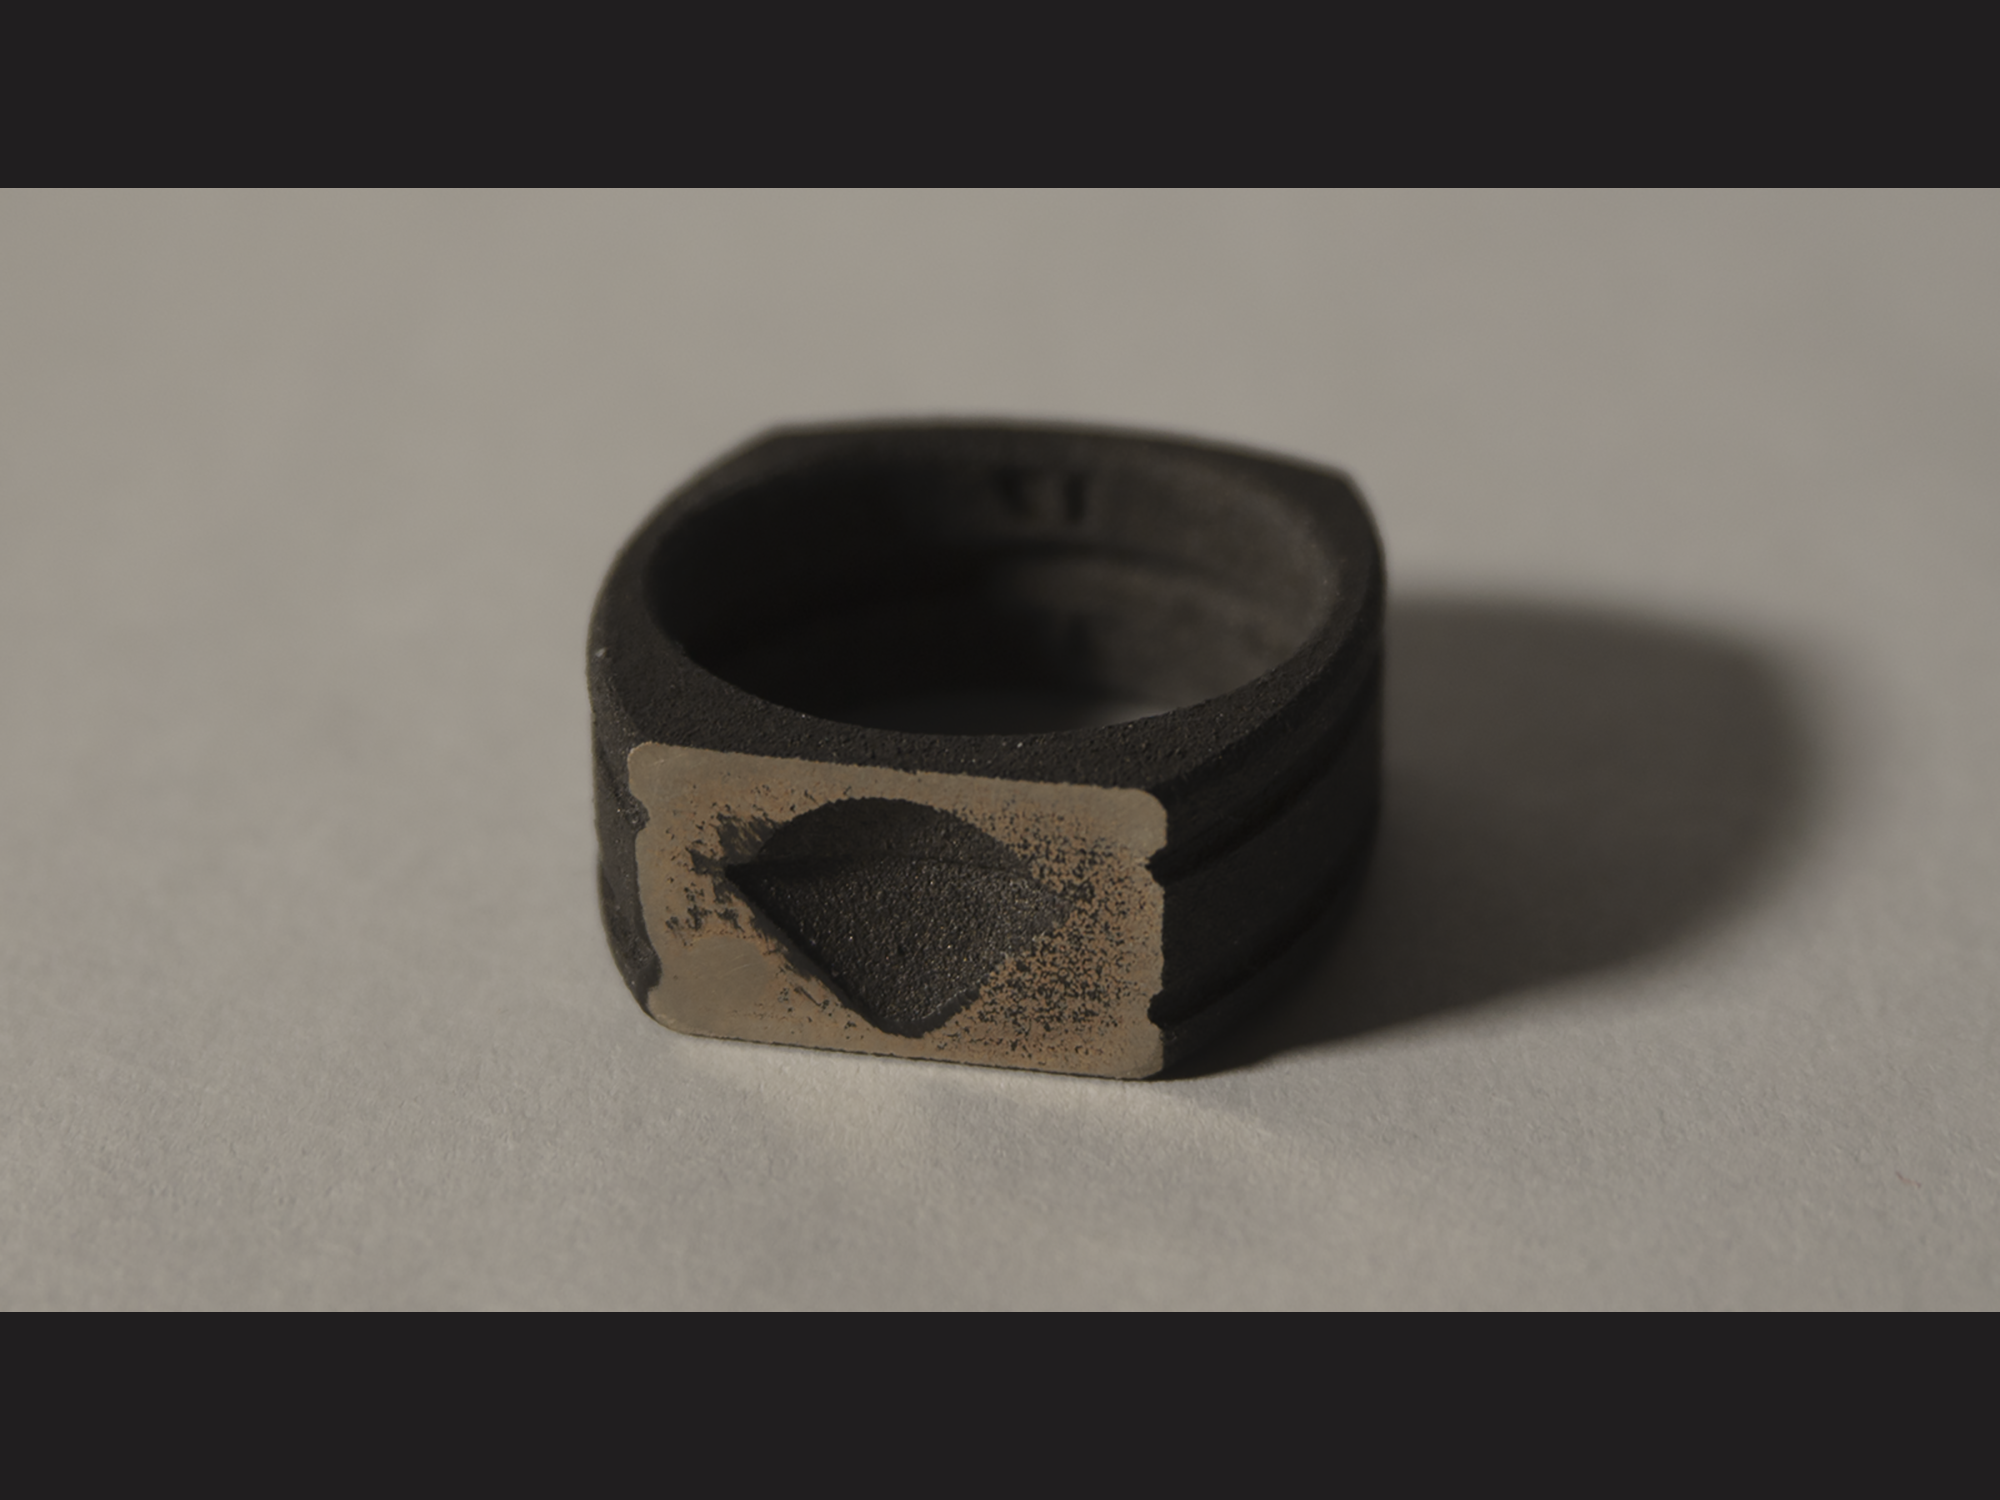 Galileo probe steel ring, printed and casted through Shapeways